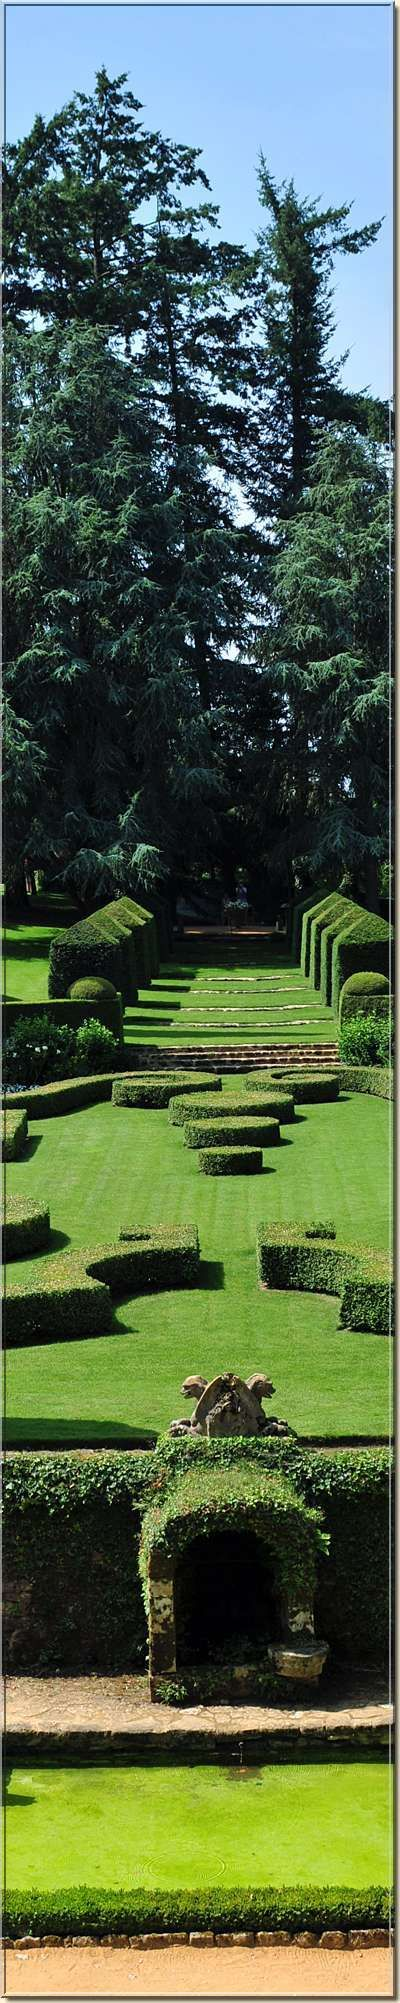 The Gardens of Eyrignac in France